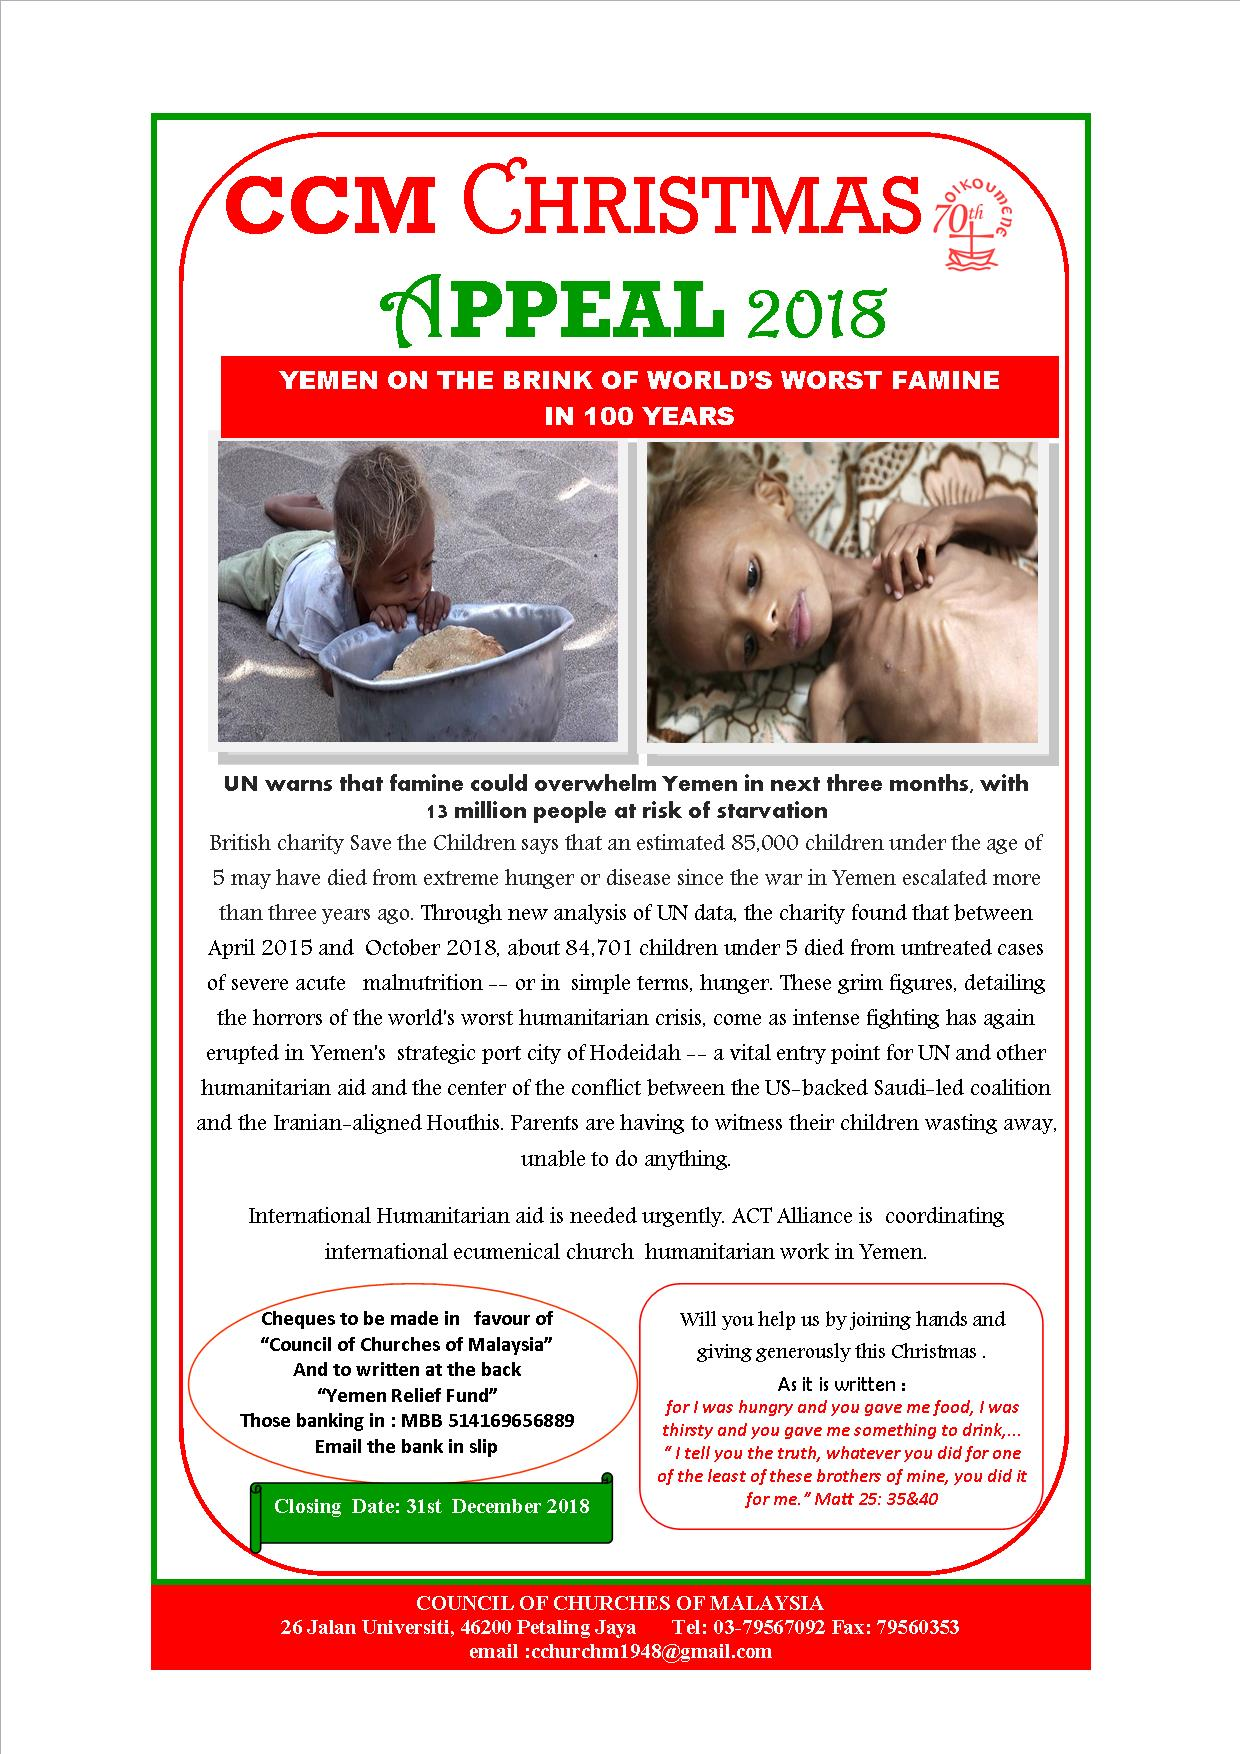 CCM Christmas Appeal 2018 – Yemen Appeal Fund   Council of Churches